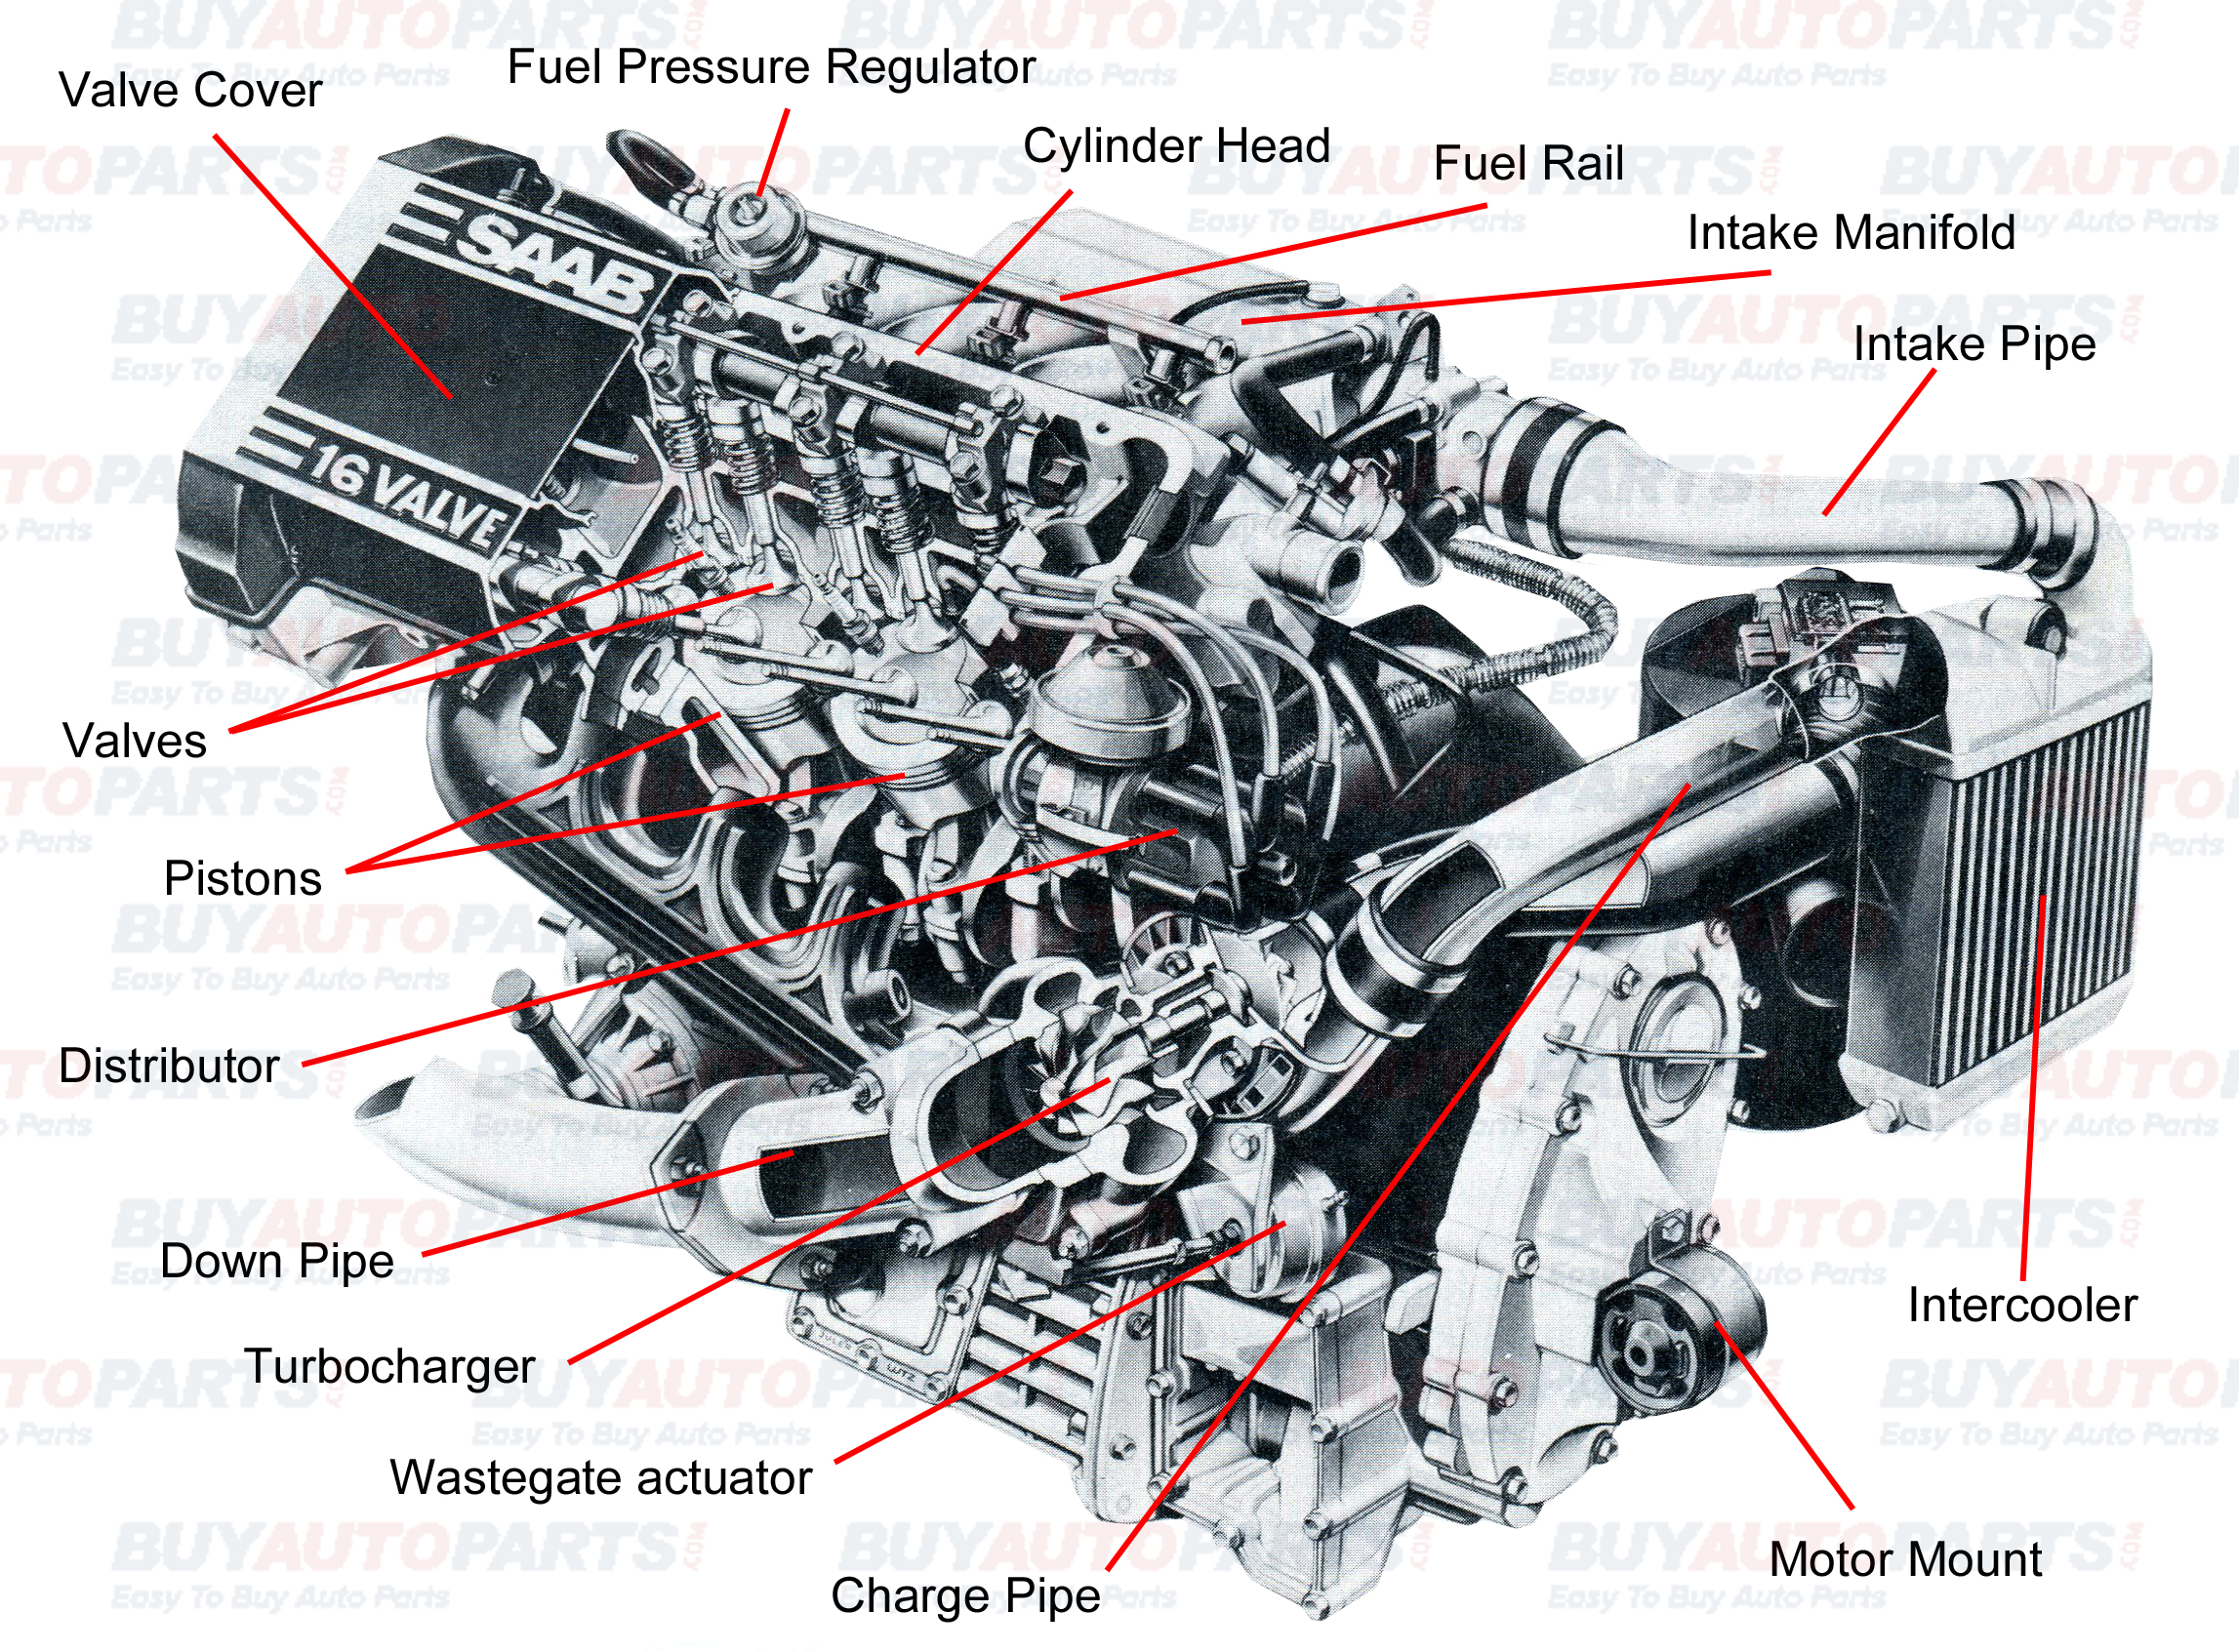 turbo engine diagram wiring diagram pictures u2022 rh mapavick co uk Turbo System Diagram Turbo Breakdown